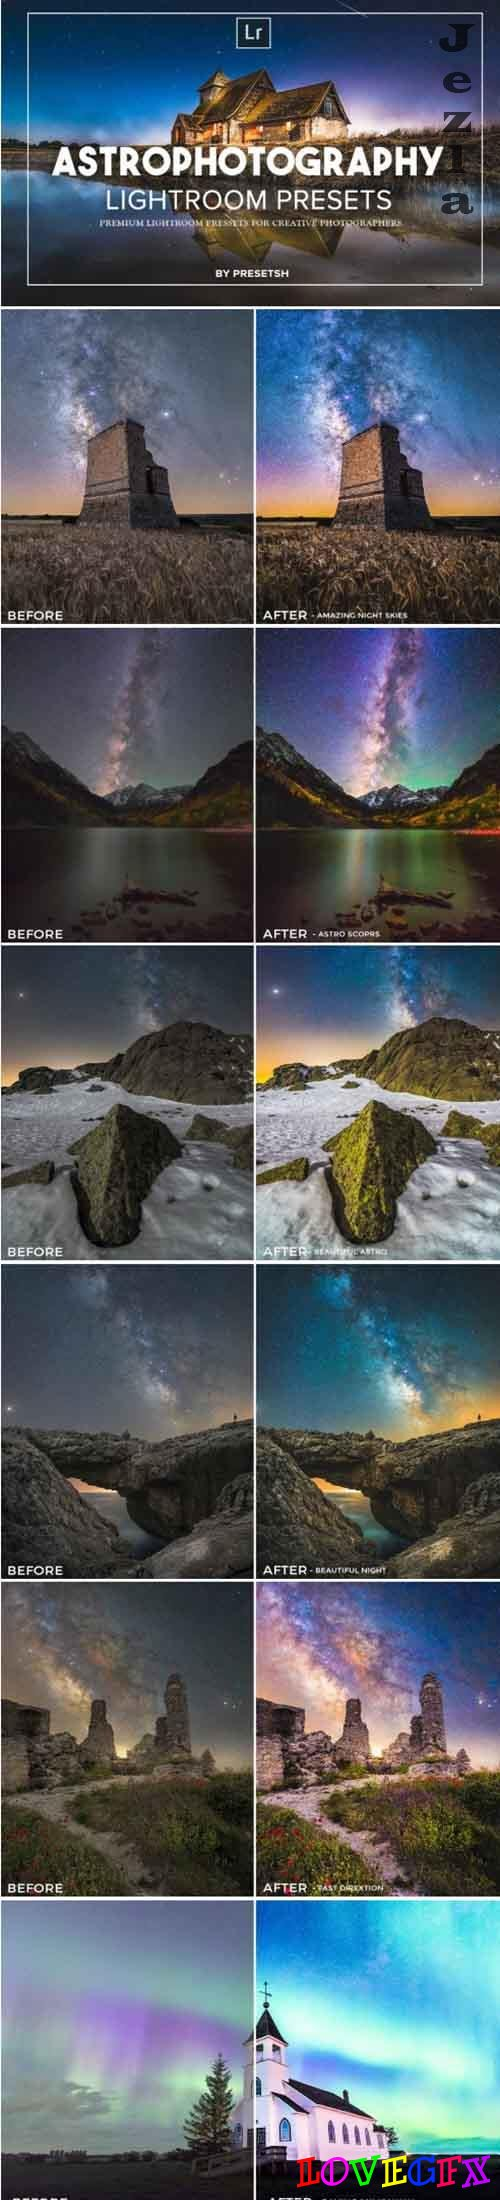 Astro Photography Lightroom Presets 4843397